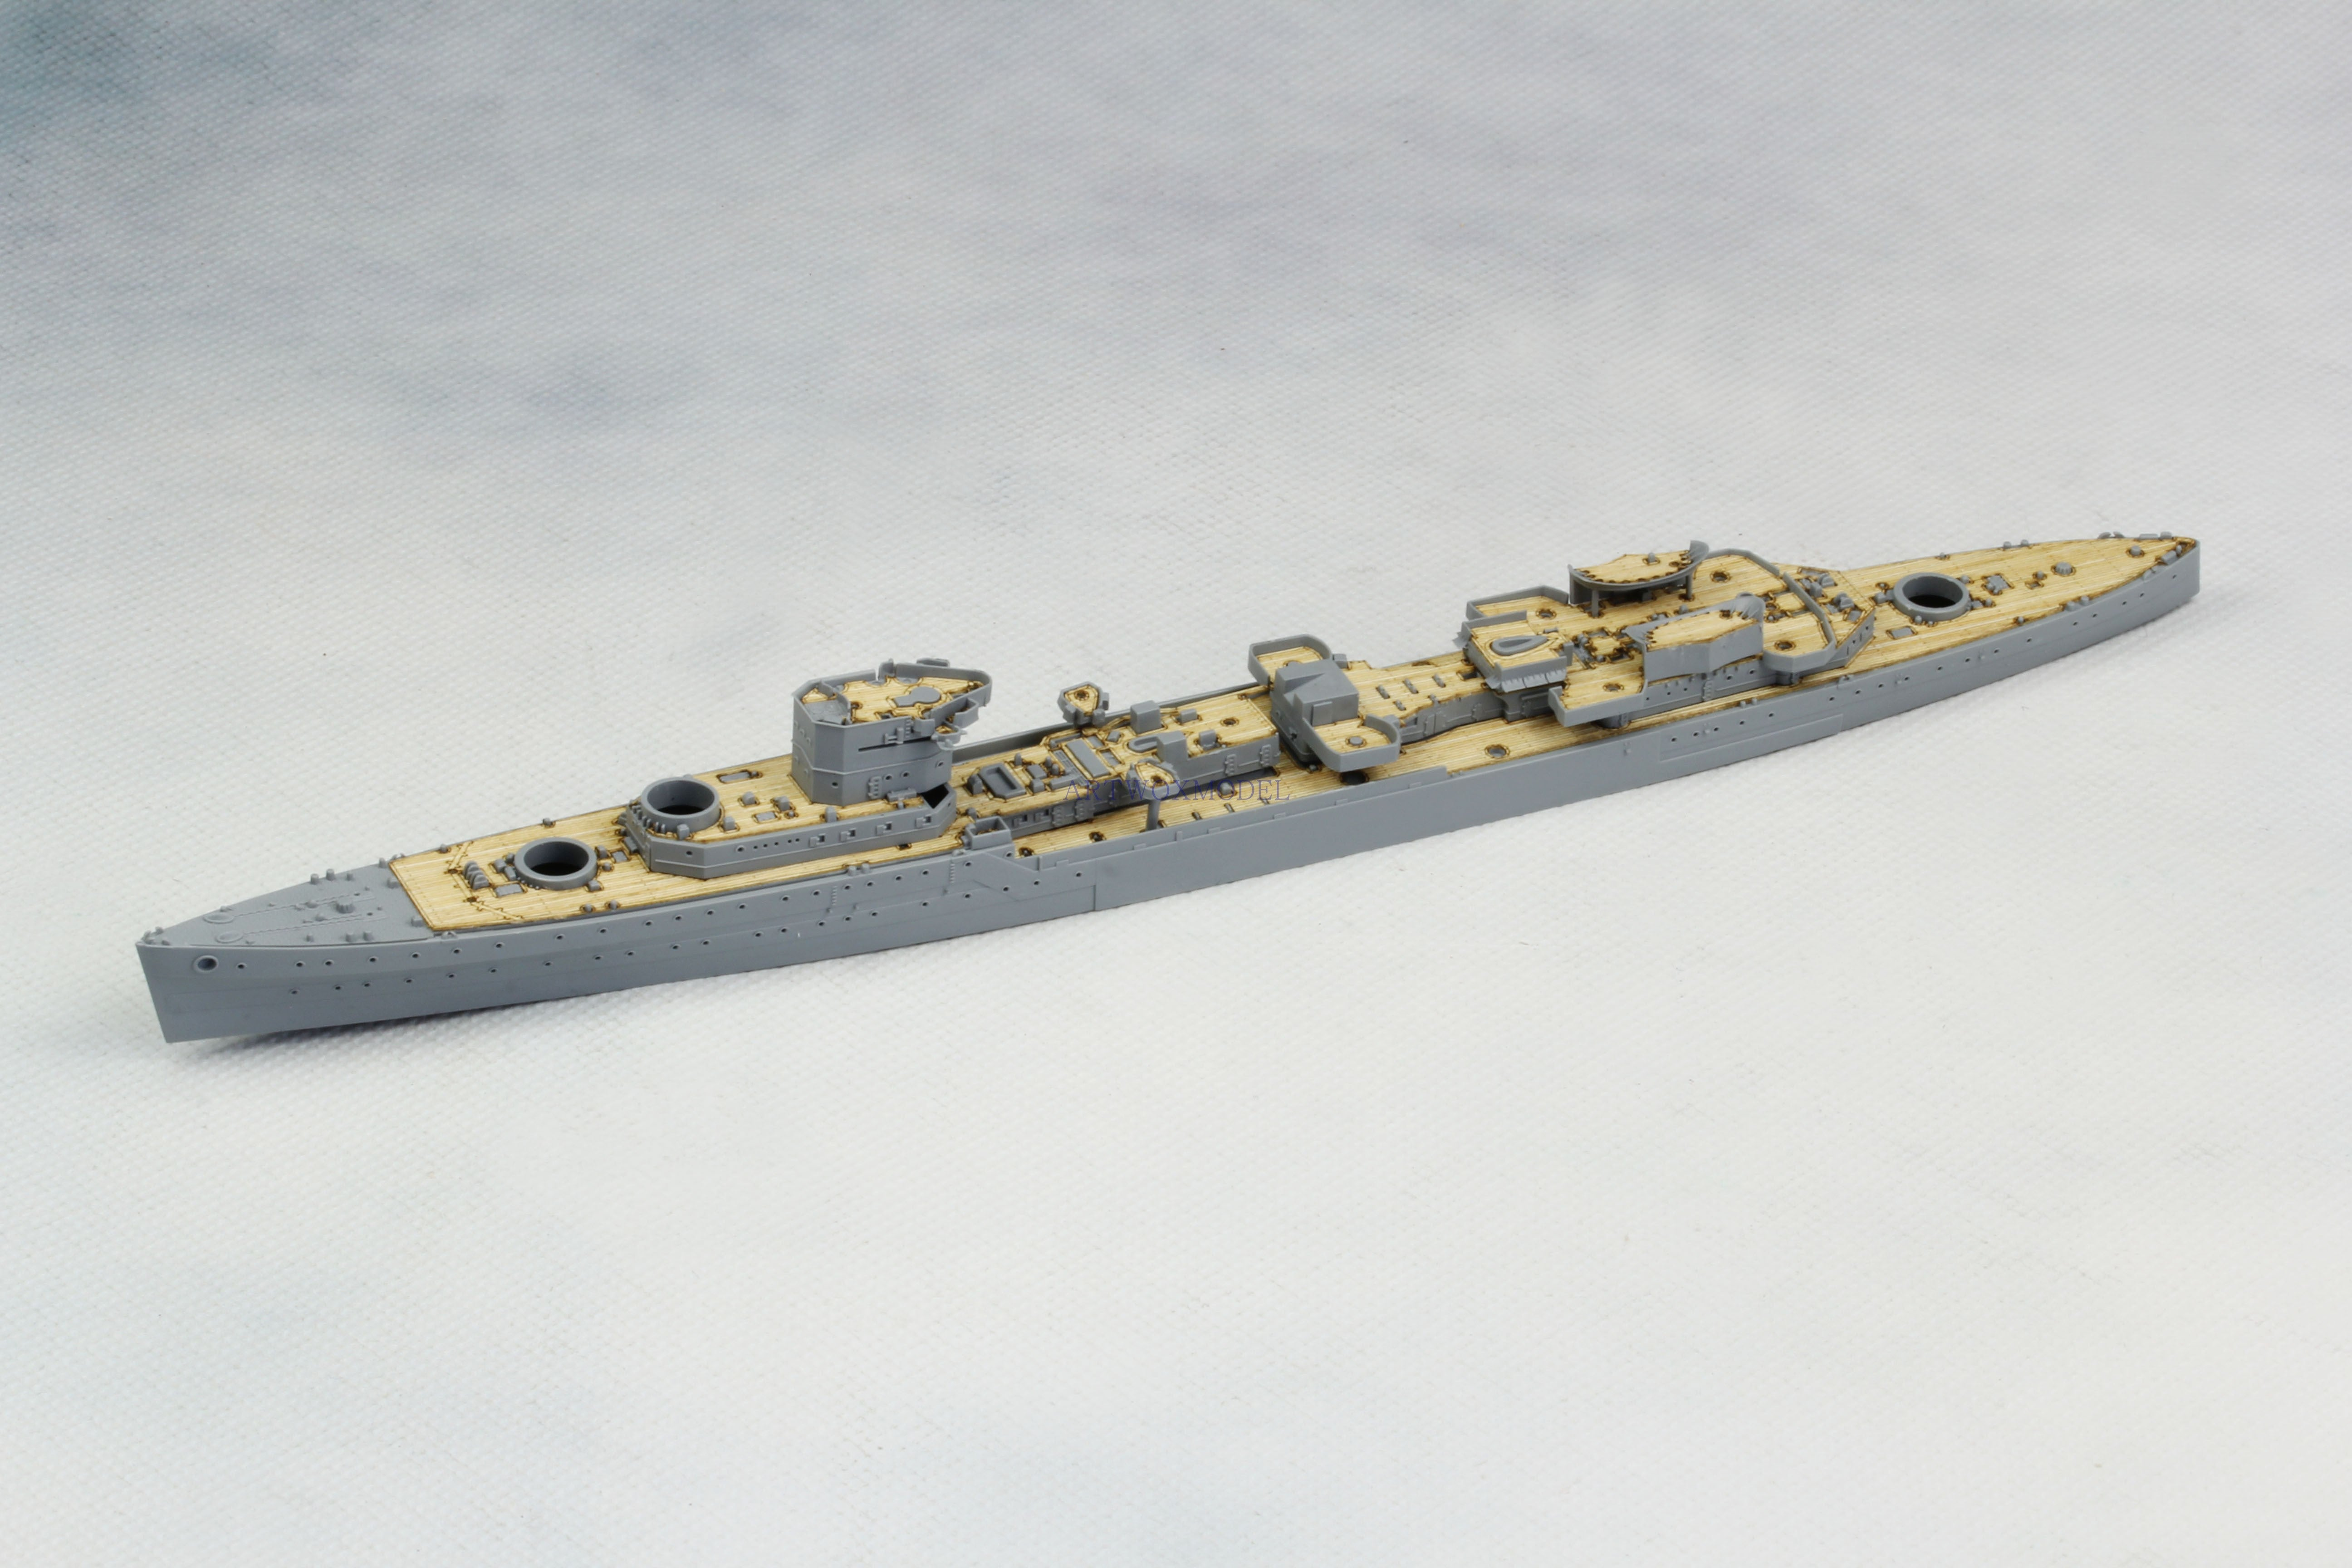 Artwox flyhawk 1127 royal navy light cruiser USS dawn 1945 wooden deck aw 20158